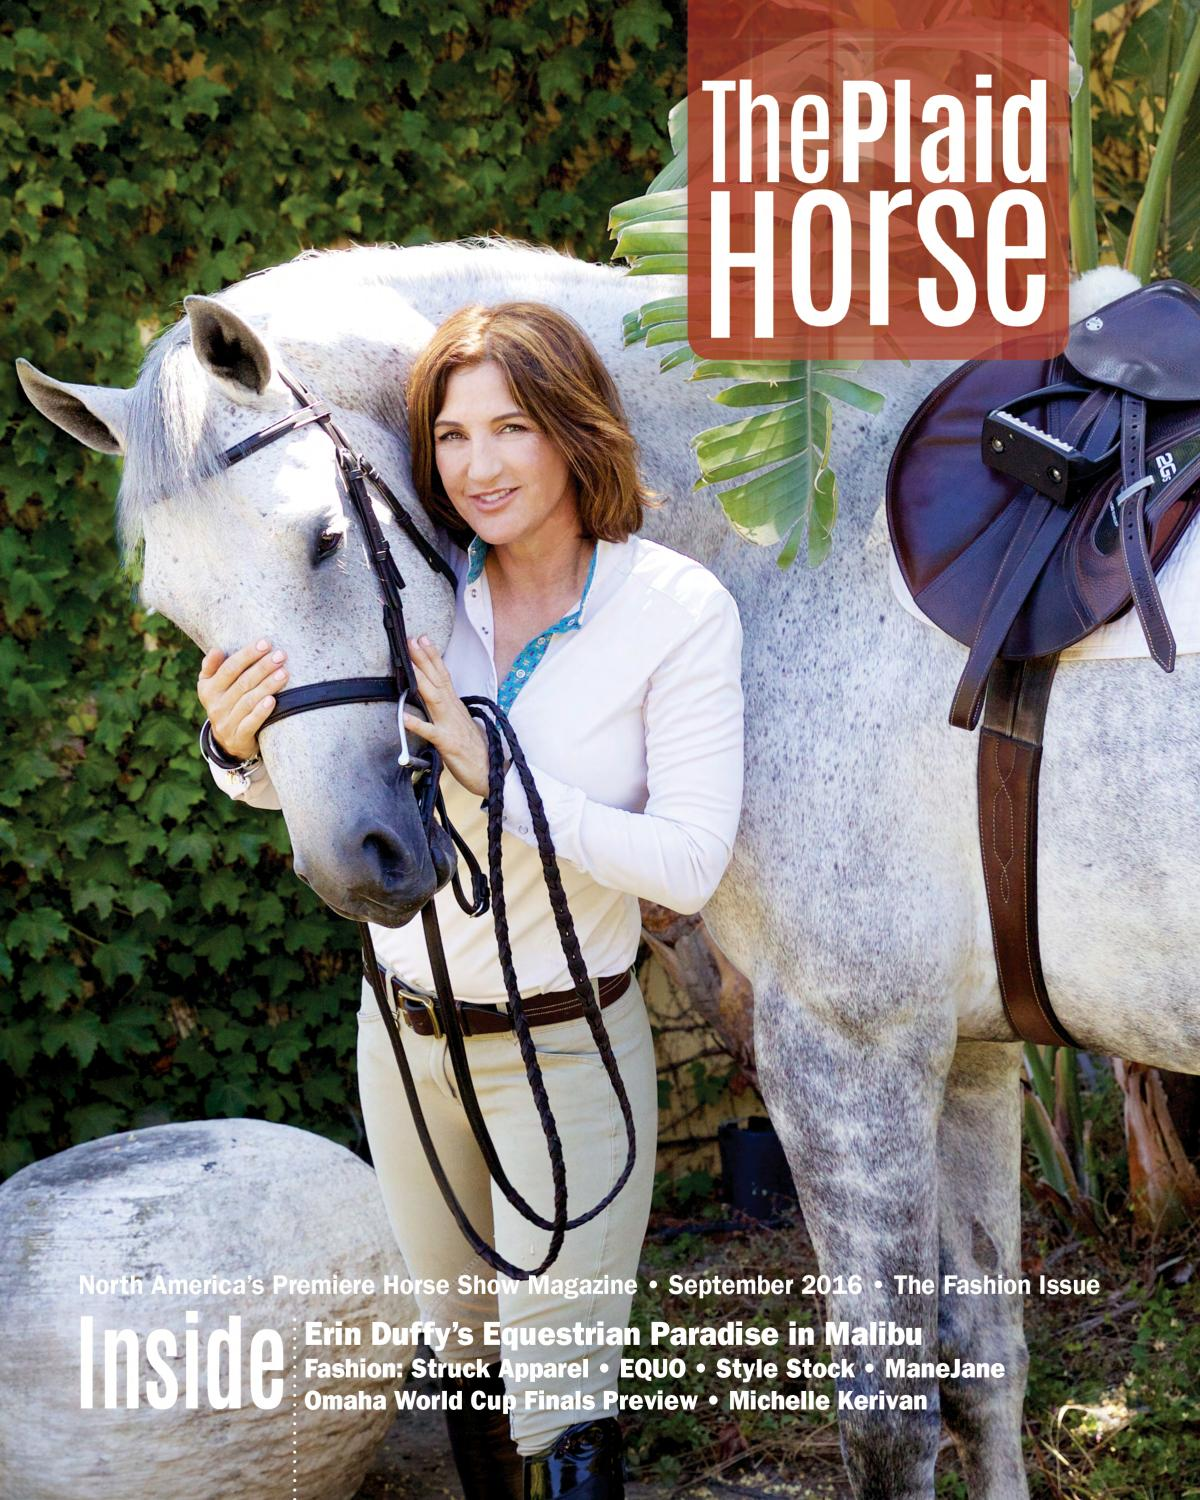 The Plaid Horse September 2016 The Fashion Issue By